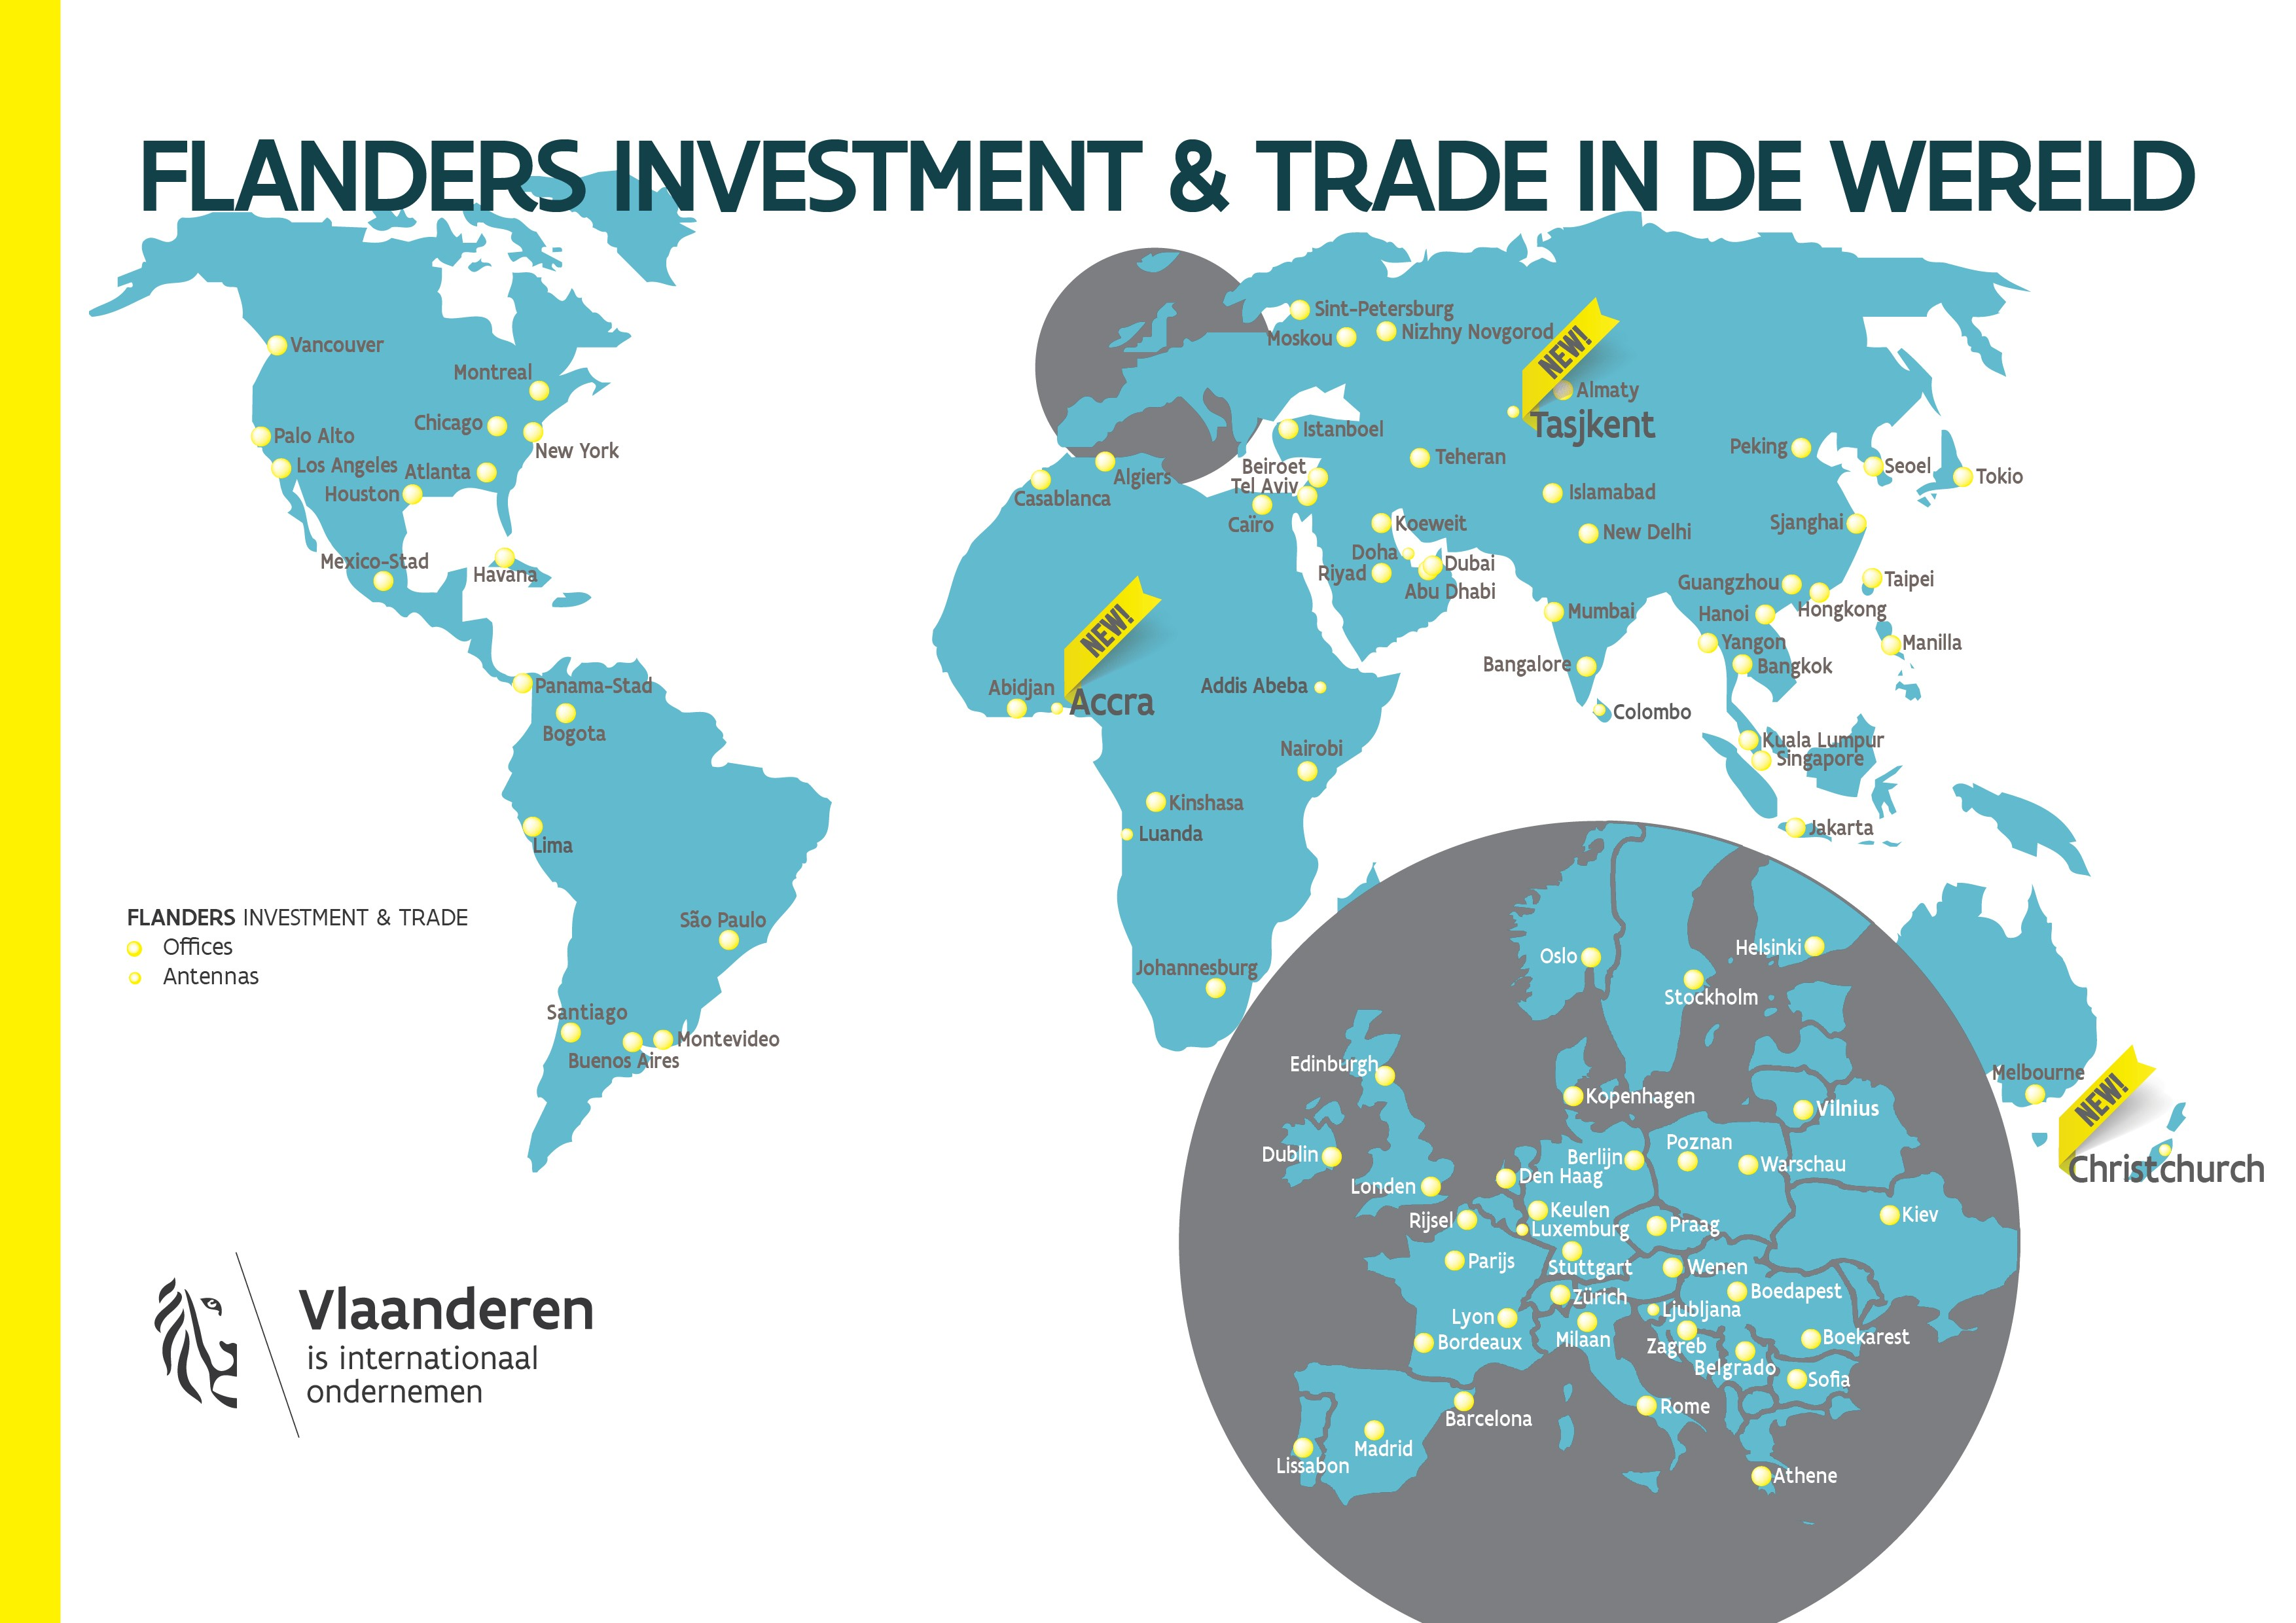 Flanders Investment  and Trade - expansion of global trade network